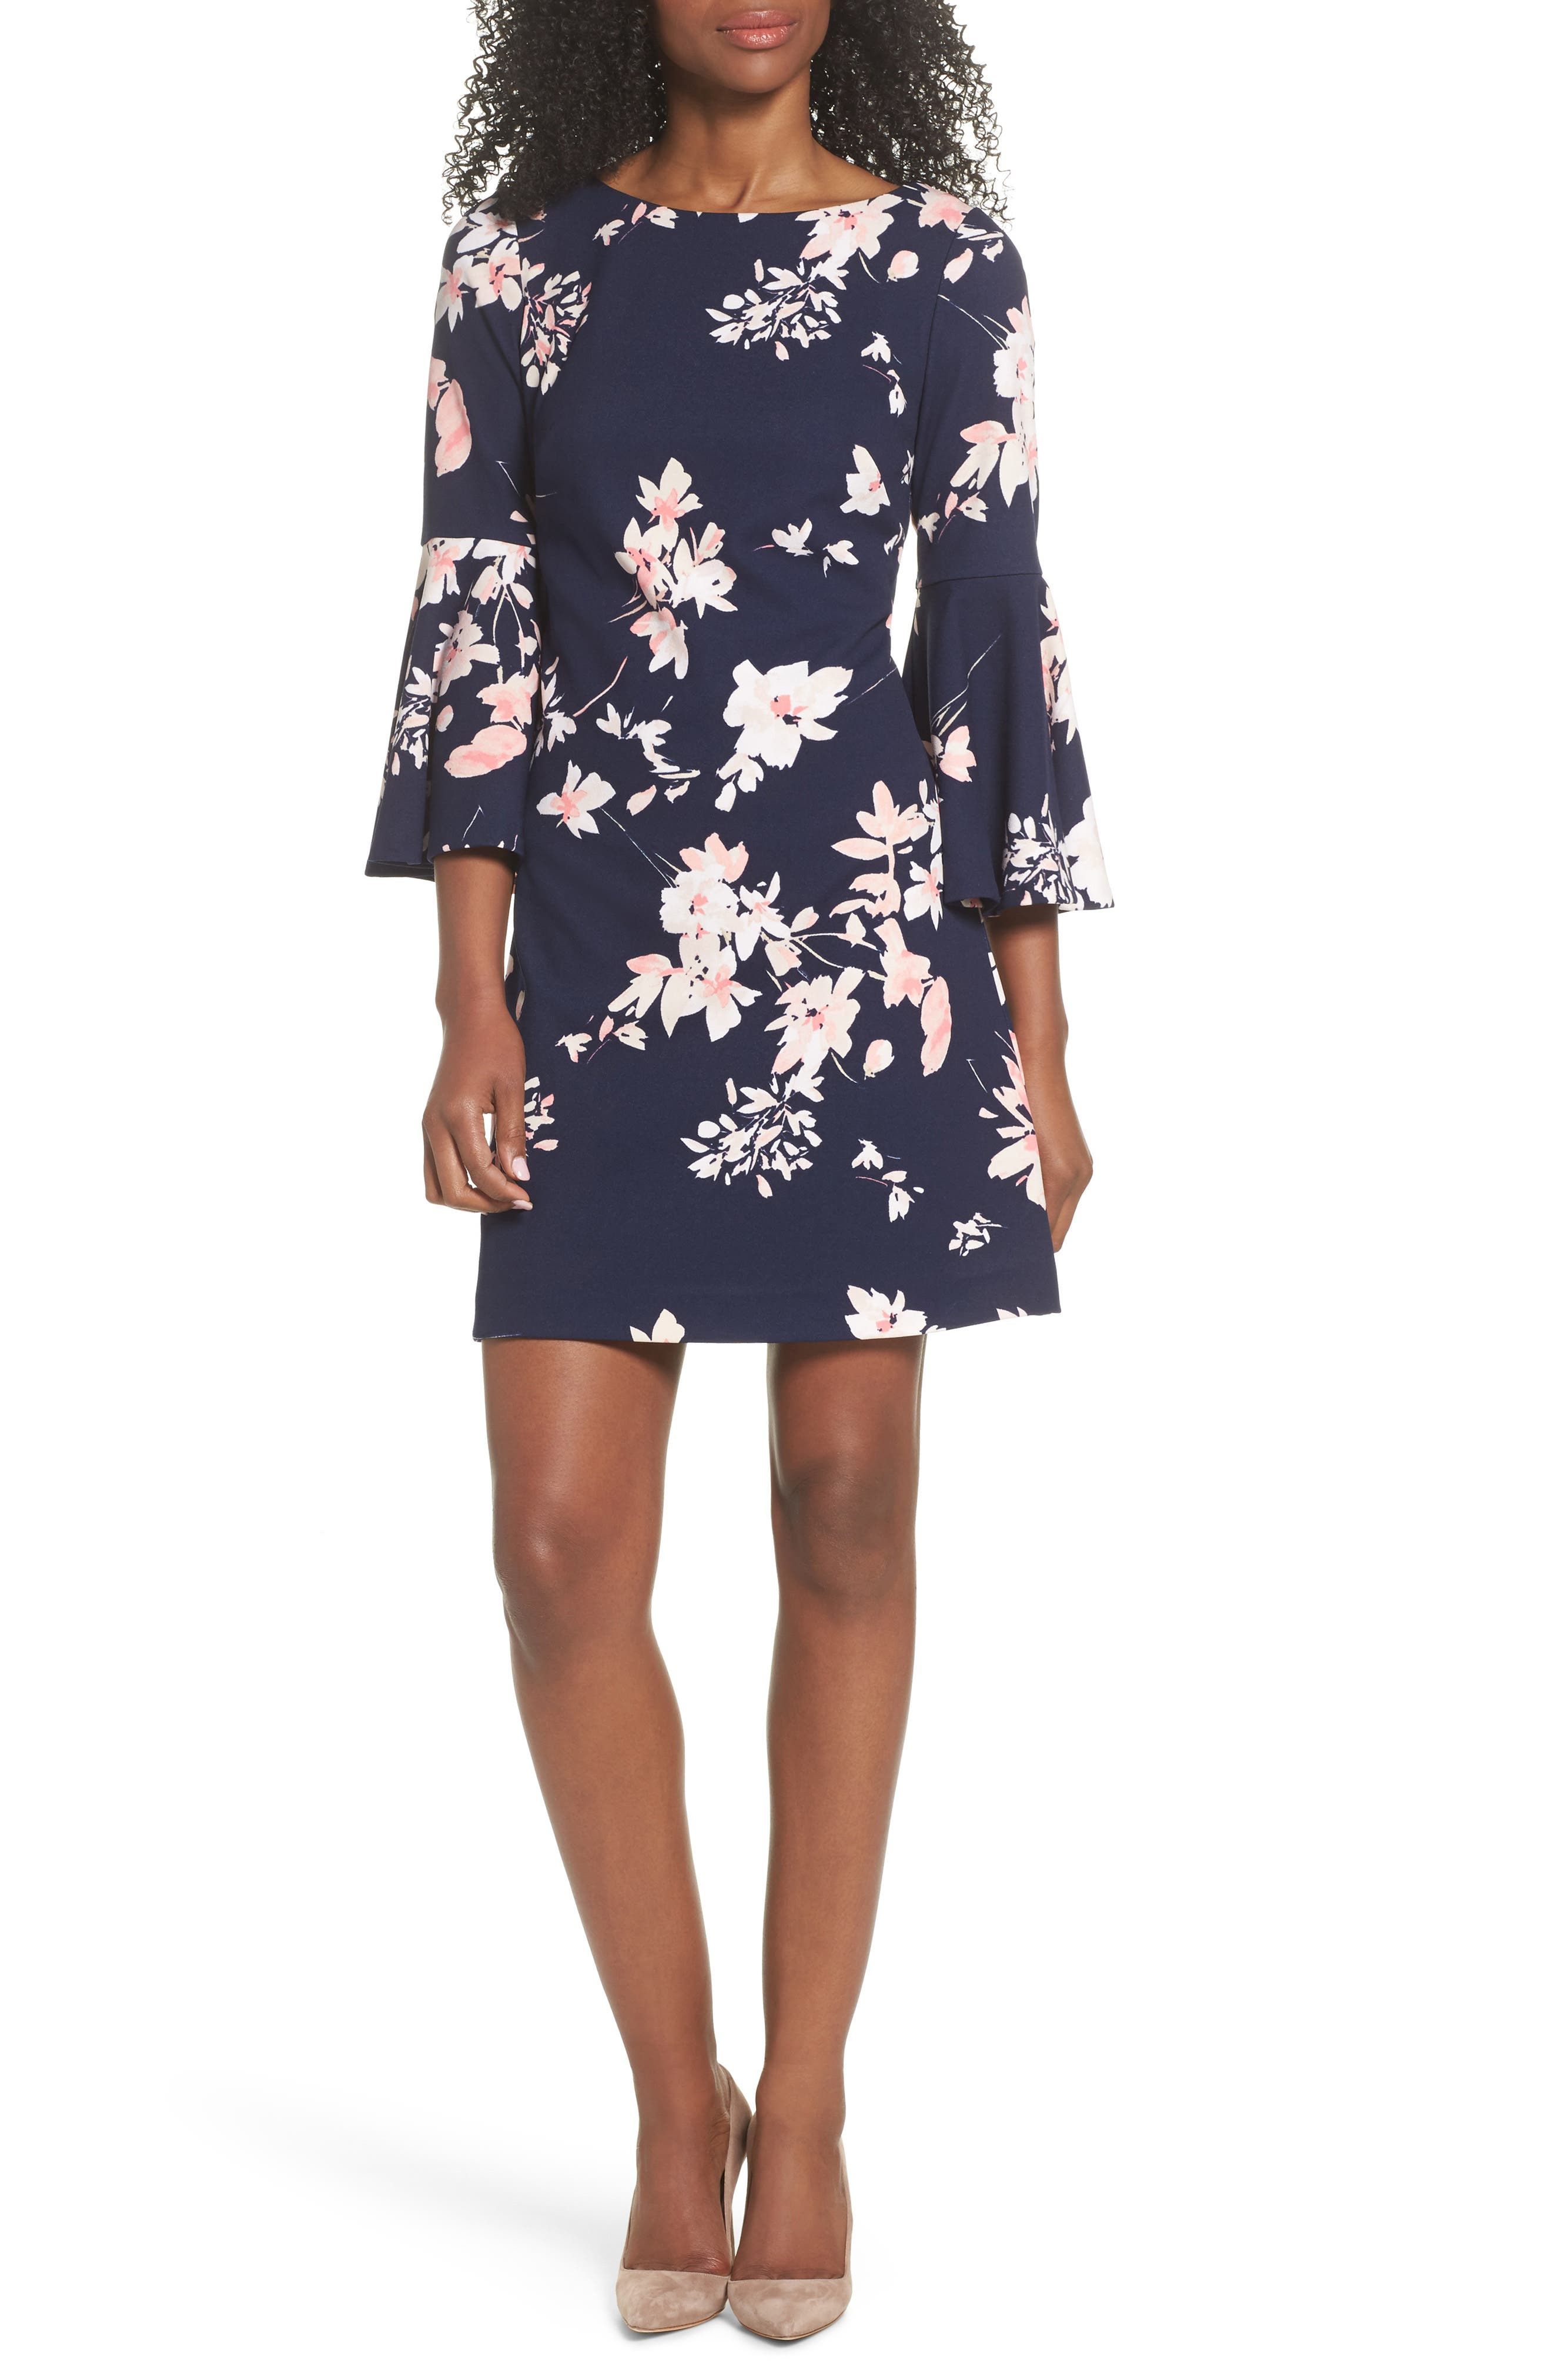 ELIZA J, Floral Bell Sleeve Dress, Main thumbnail 1, color, NAVY/ PINK